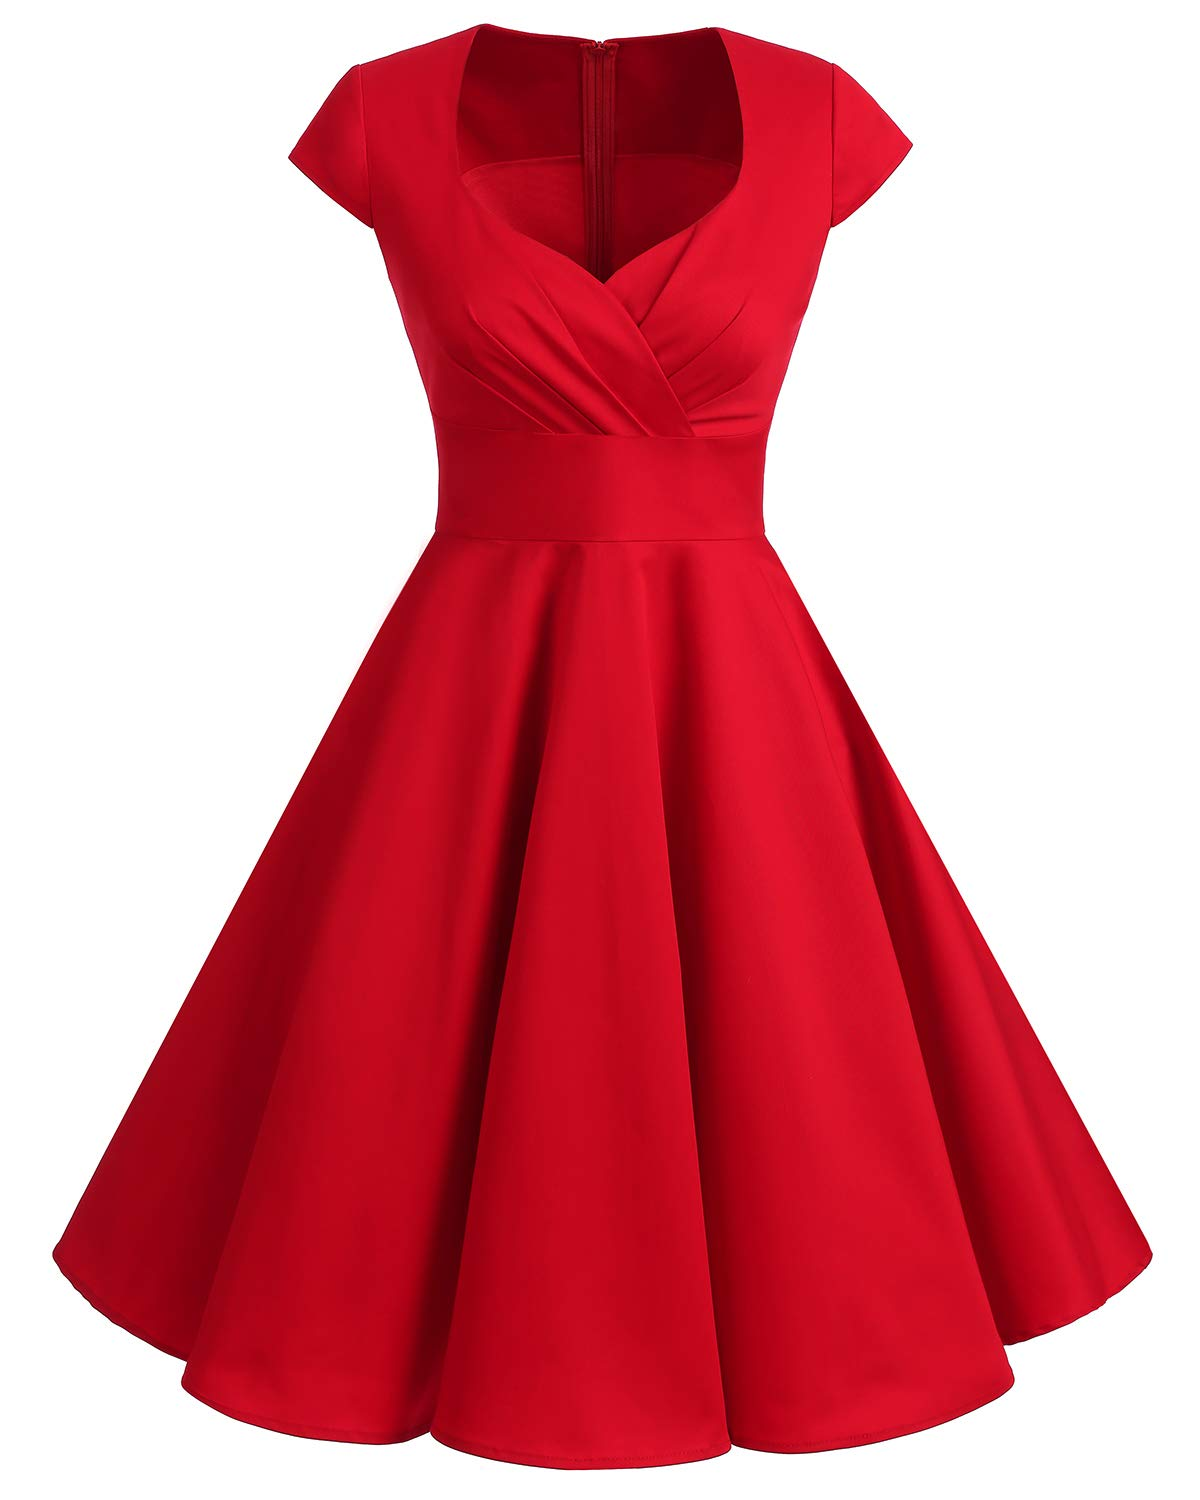 Red Dress - Womens Off The Shoulder Short Sleeve High Low Cocktail Skater Dress